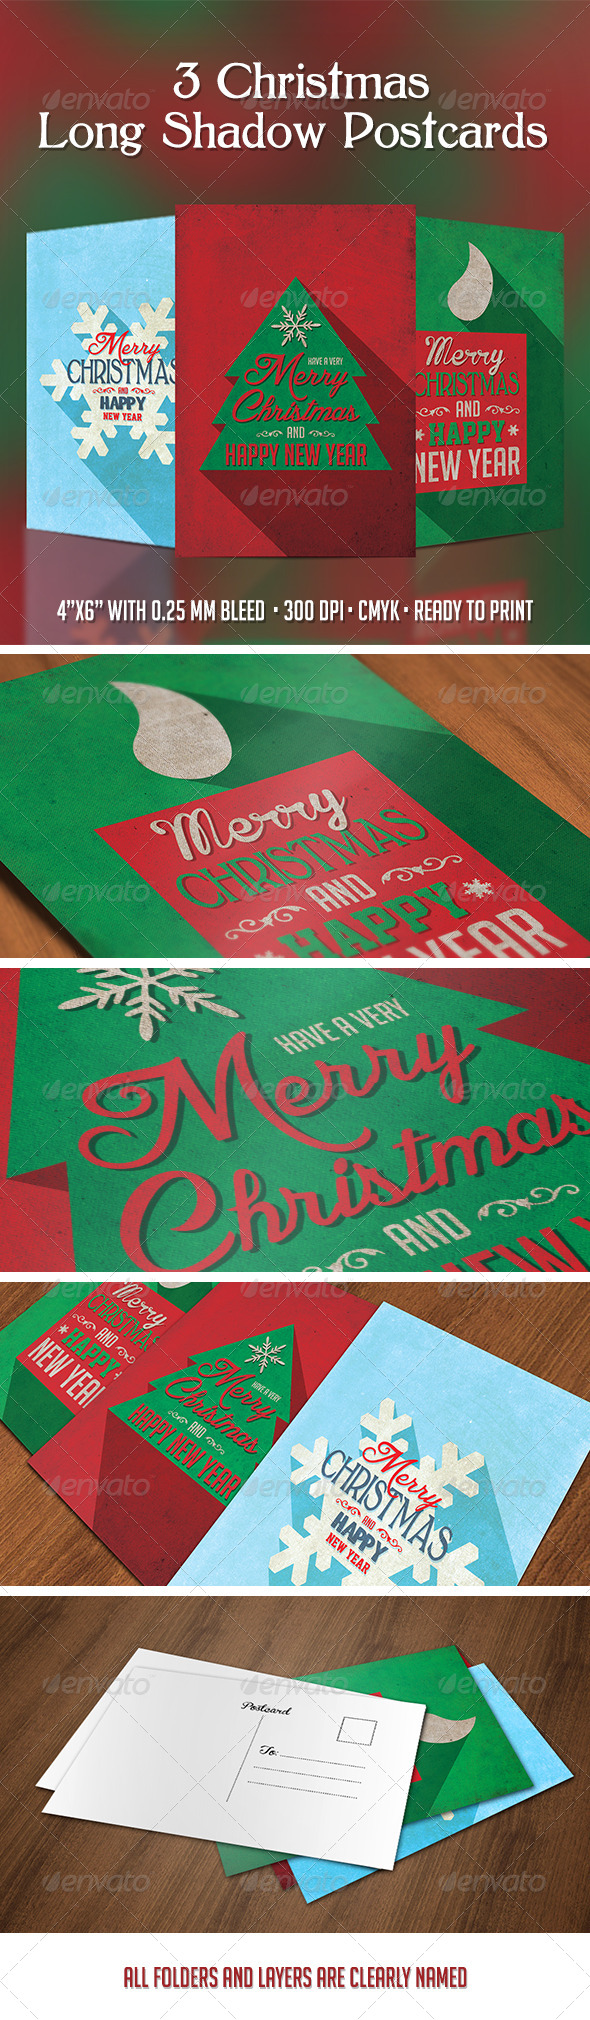 3 Christmas Long Shadow Postcards - Cards & Invites Print Templates